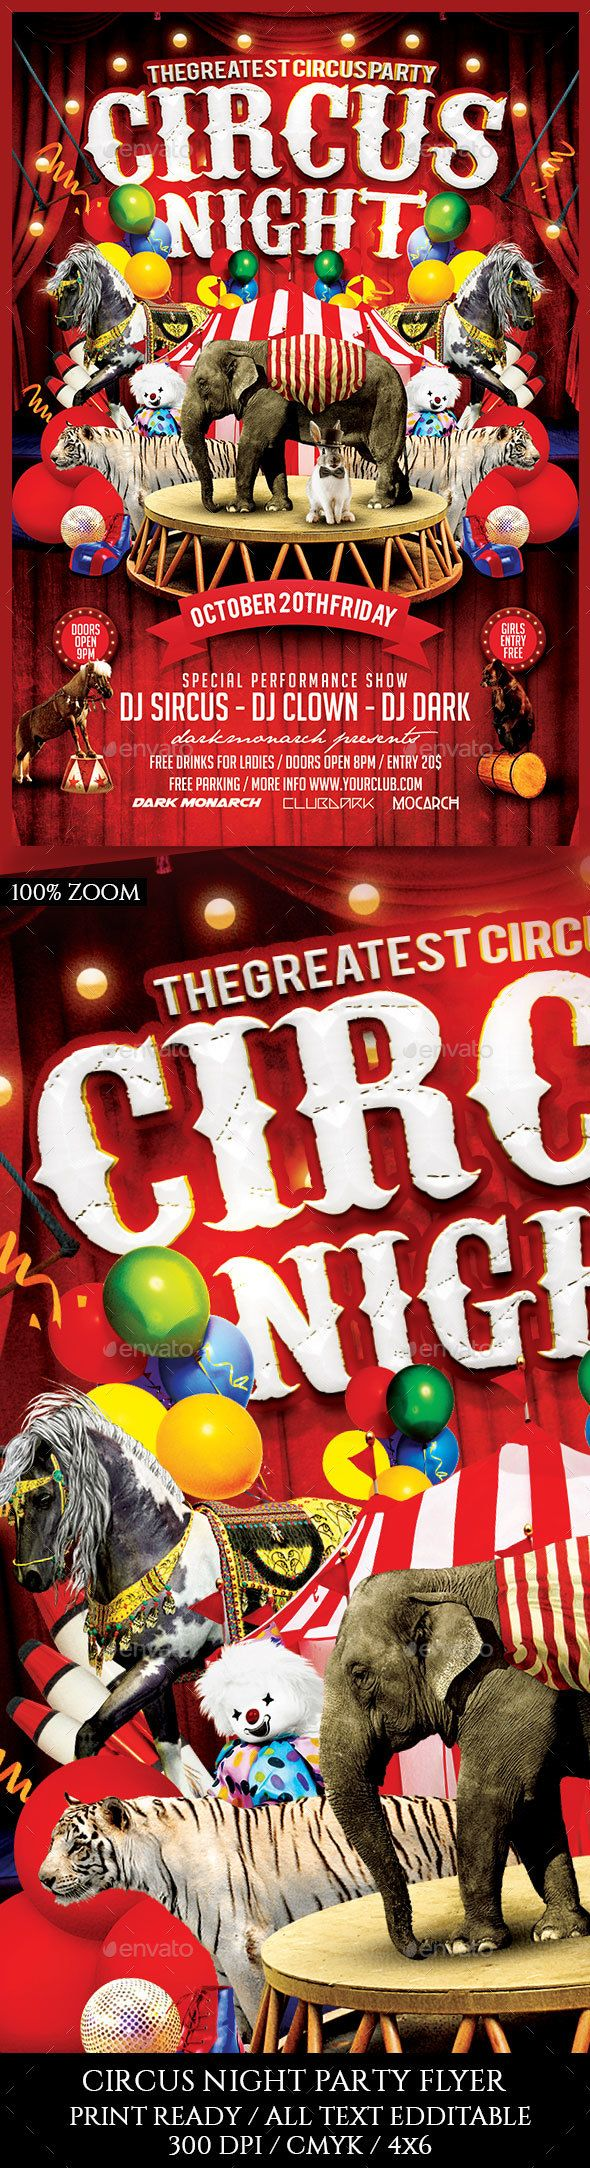 circus night flyer psd templates flyer template and edit text